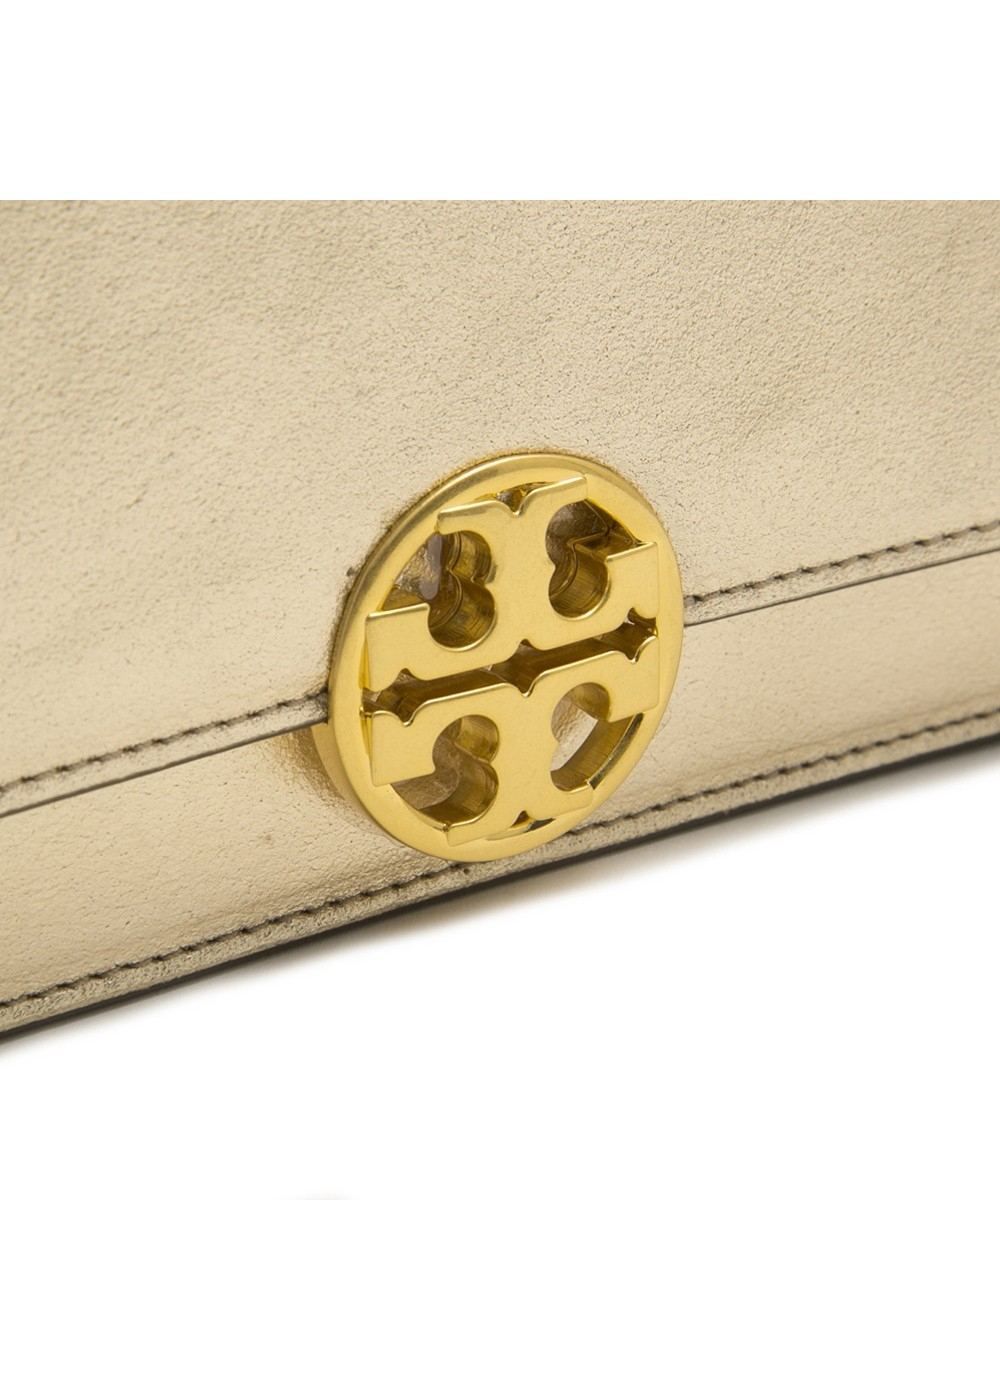 TORY BURCH|トリバーチ|CHELSEA|チェルシー|METALLIC CONVERTIBLE CLUTCH